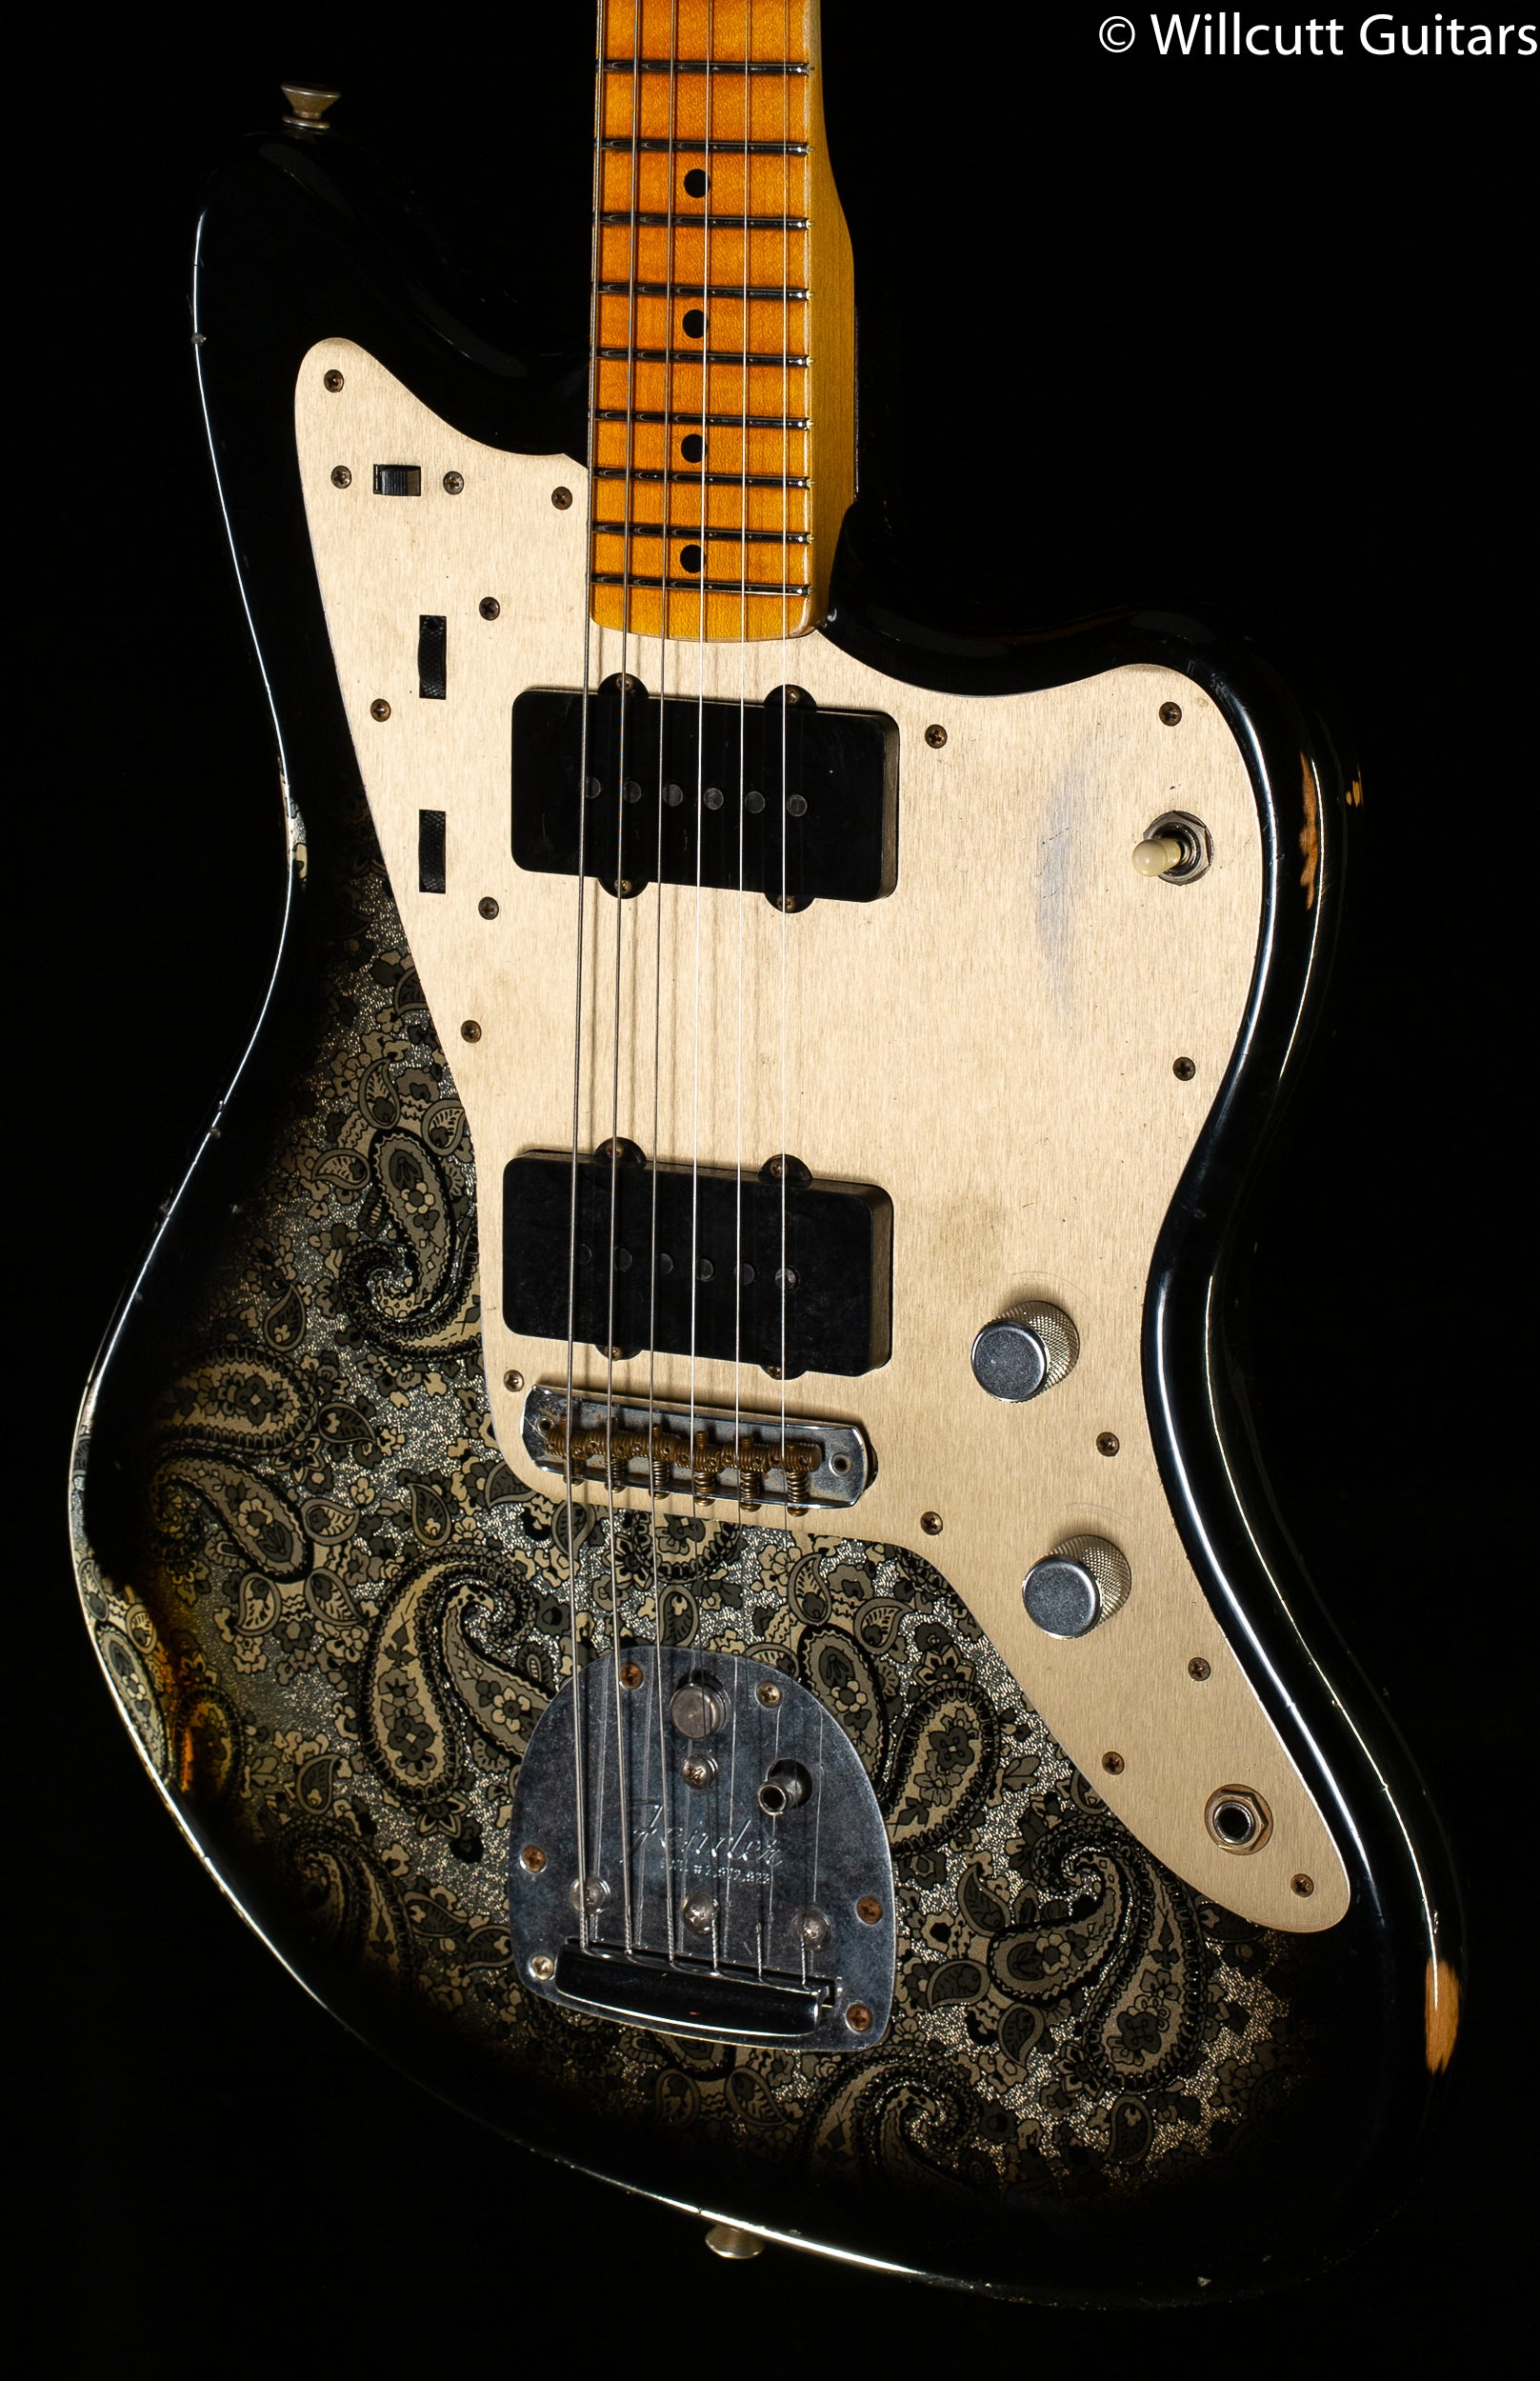 Fender Custom Shop Limited Edition Custom Jazzmaster Relic Maple Fingerboard Aged Black Paisley